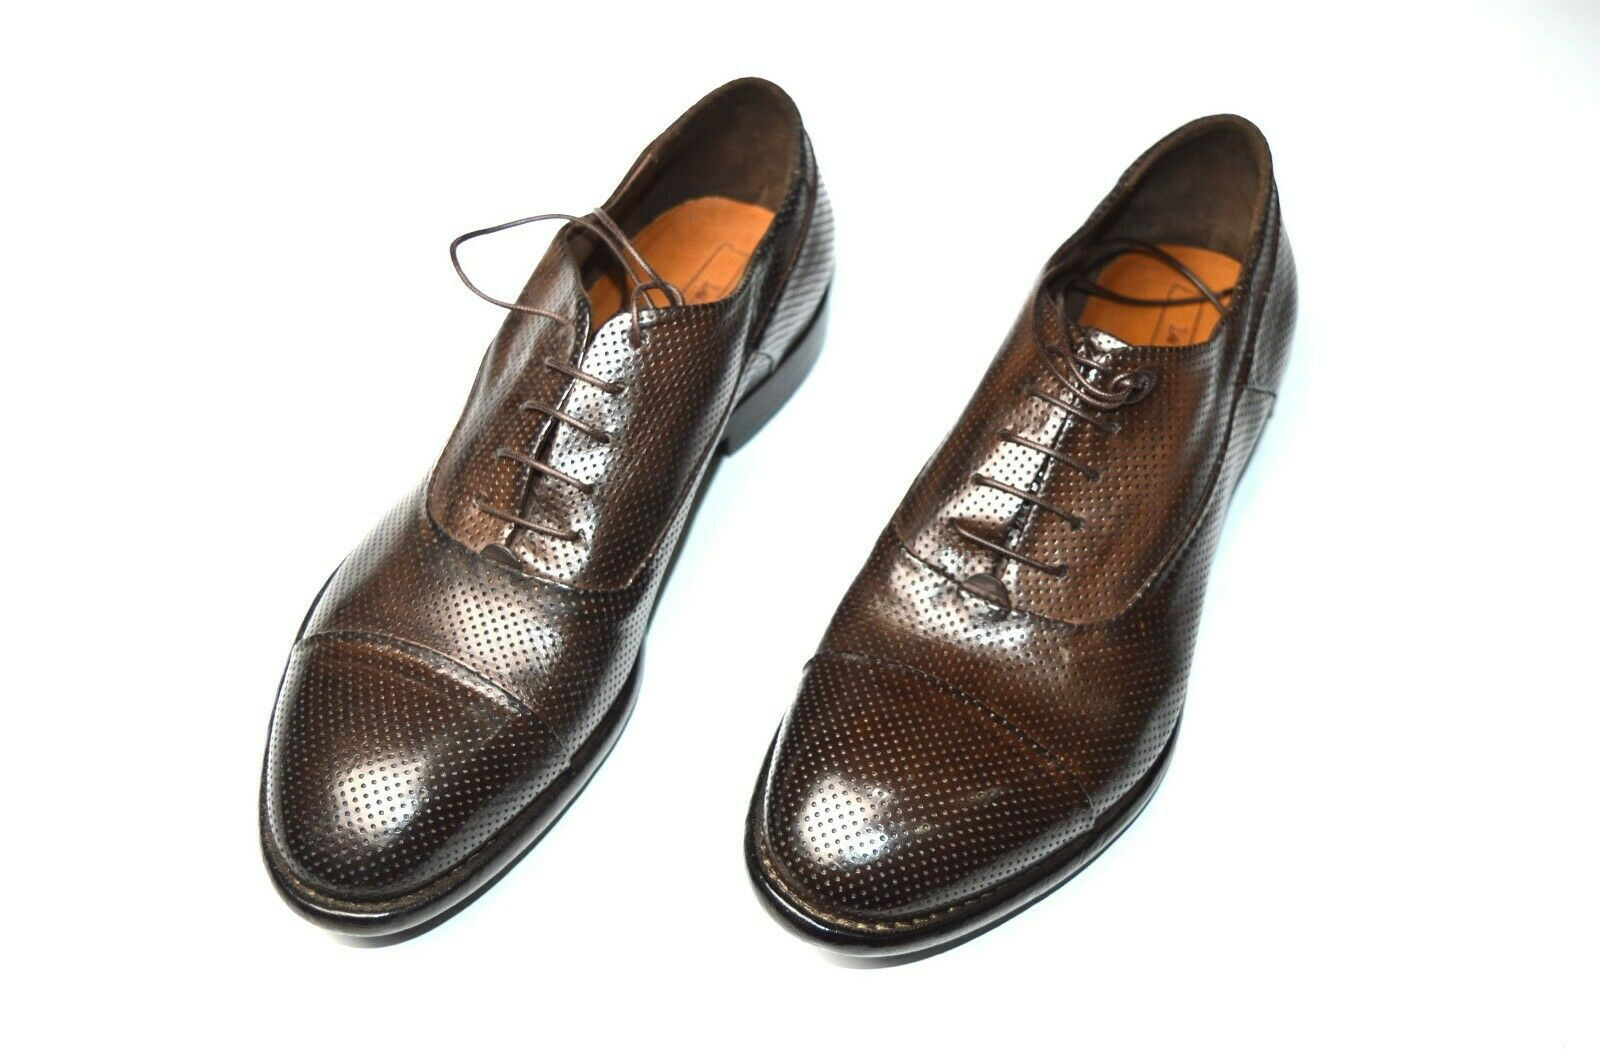 New LEMARGO Dress Leather scarpe Dimensione Europa  Uk 8 Us 9 (CodLM2)  risparmia fino al 30-50% di sconto